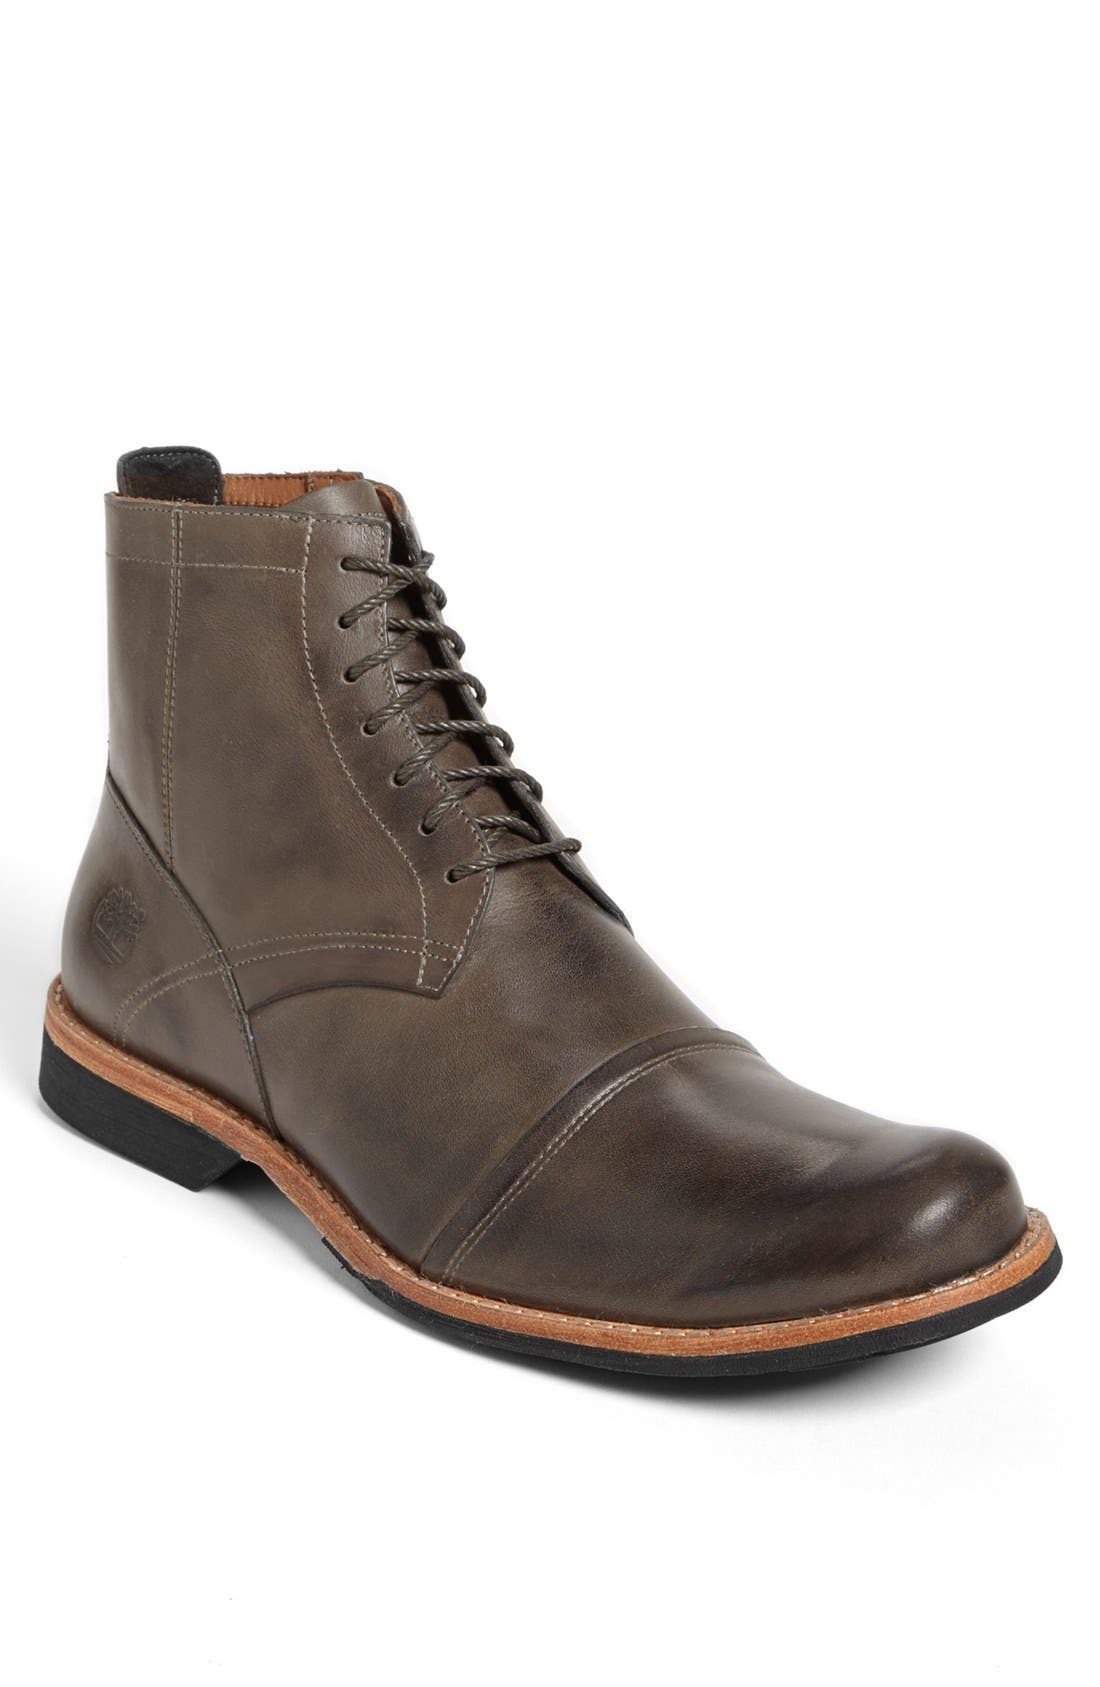 Alternate Image 1 Selected - Timberland Earthkeepers™ 'City' Cap Toe Boot